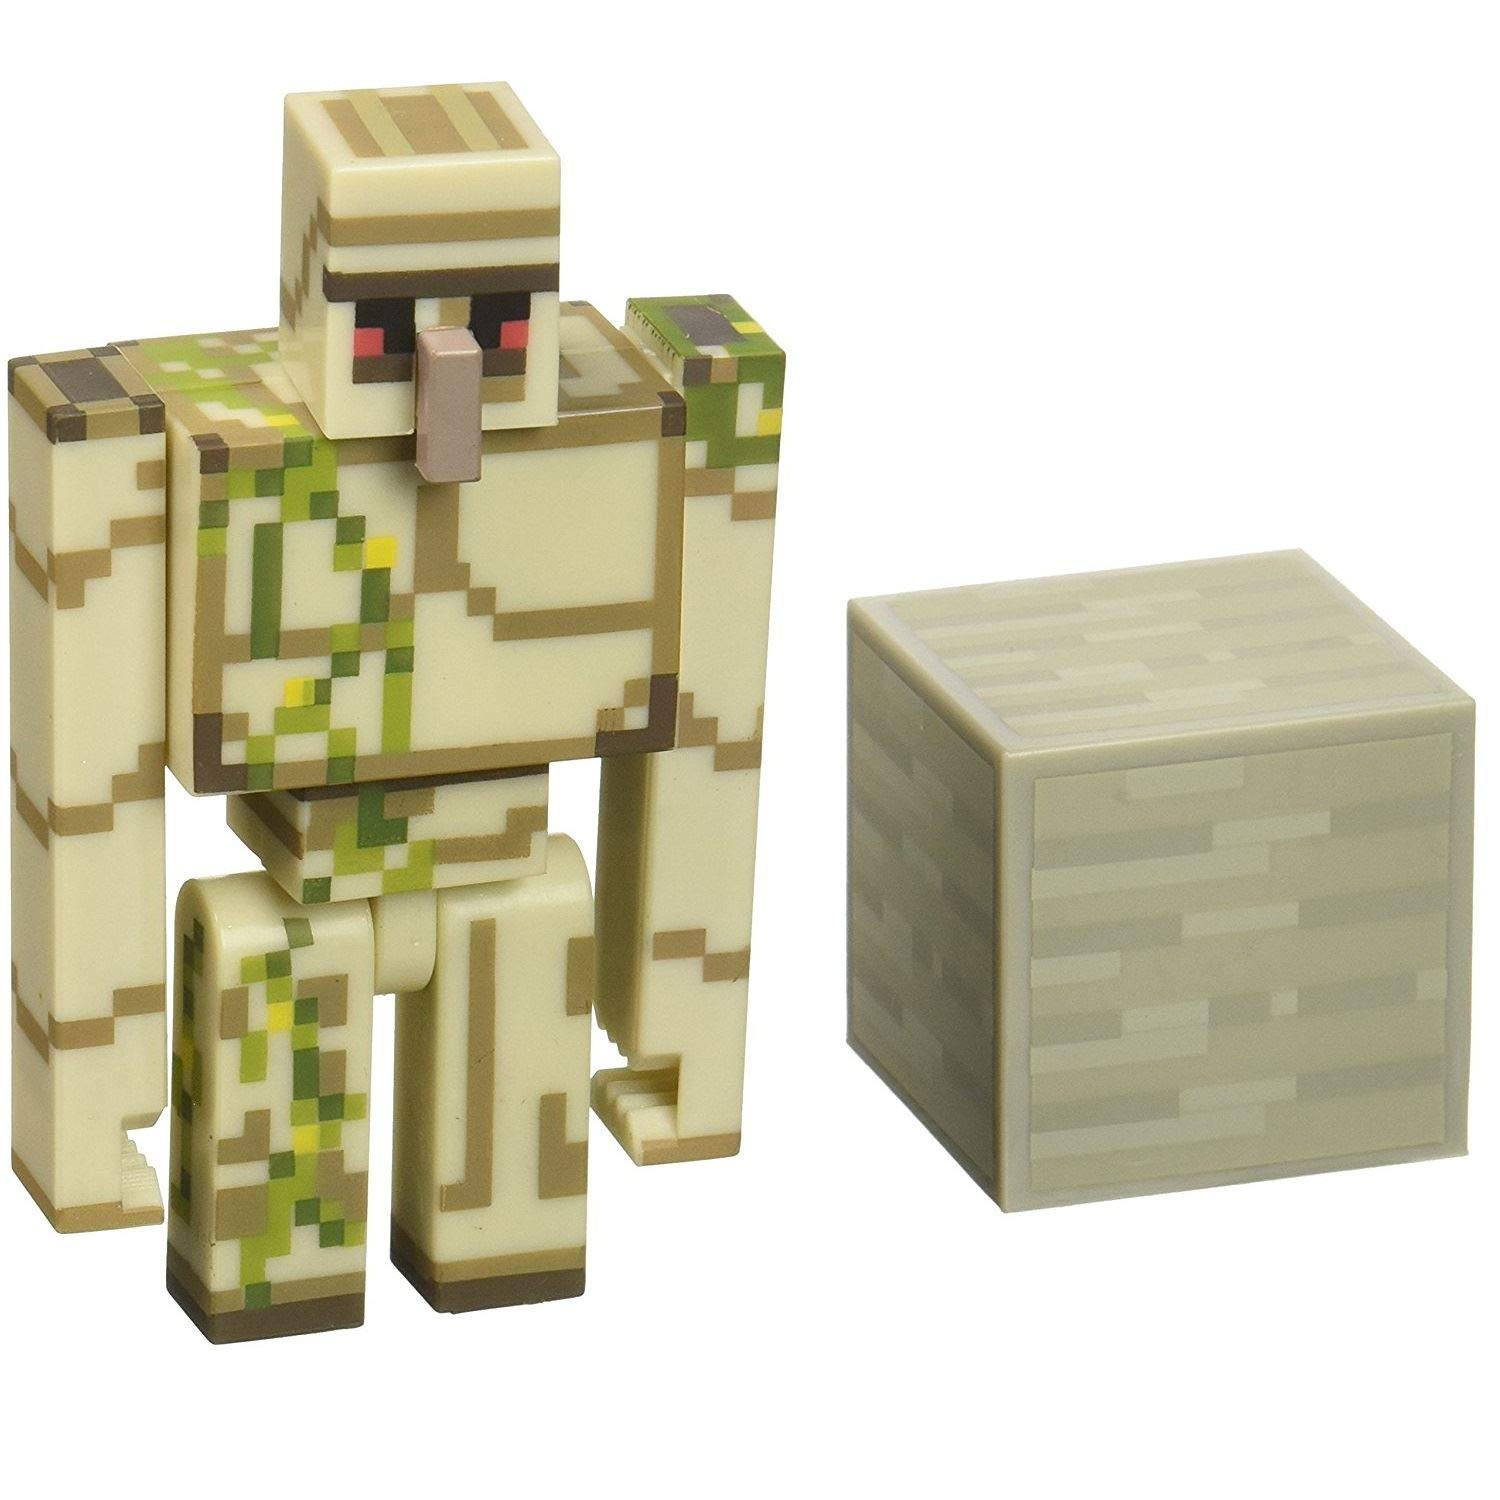 Overworld Minecraft Series 2 Iron Golem figurine